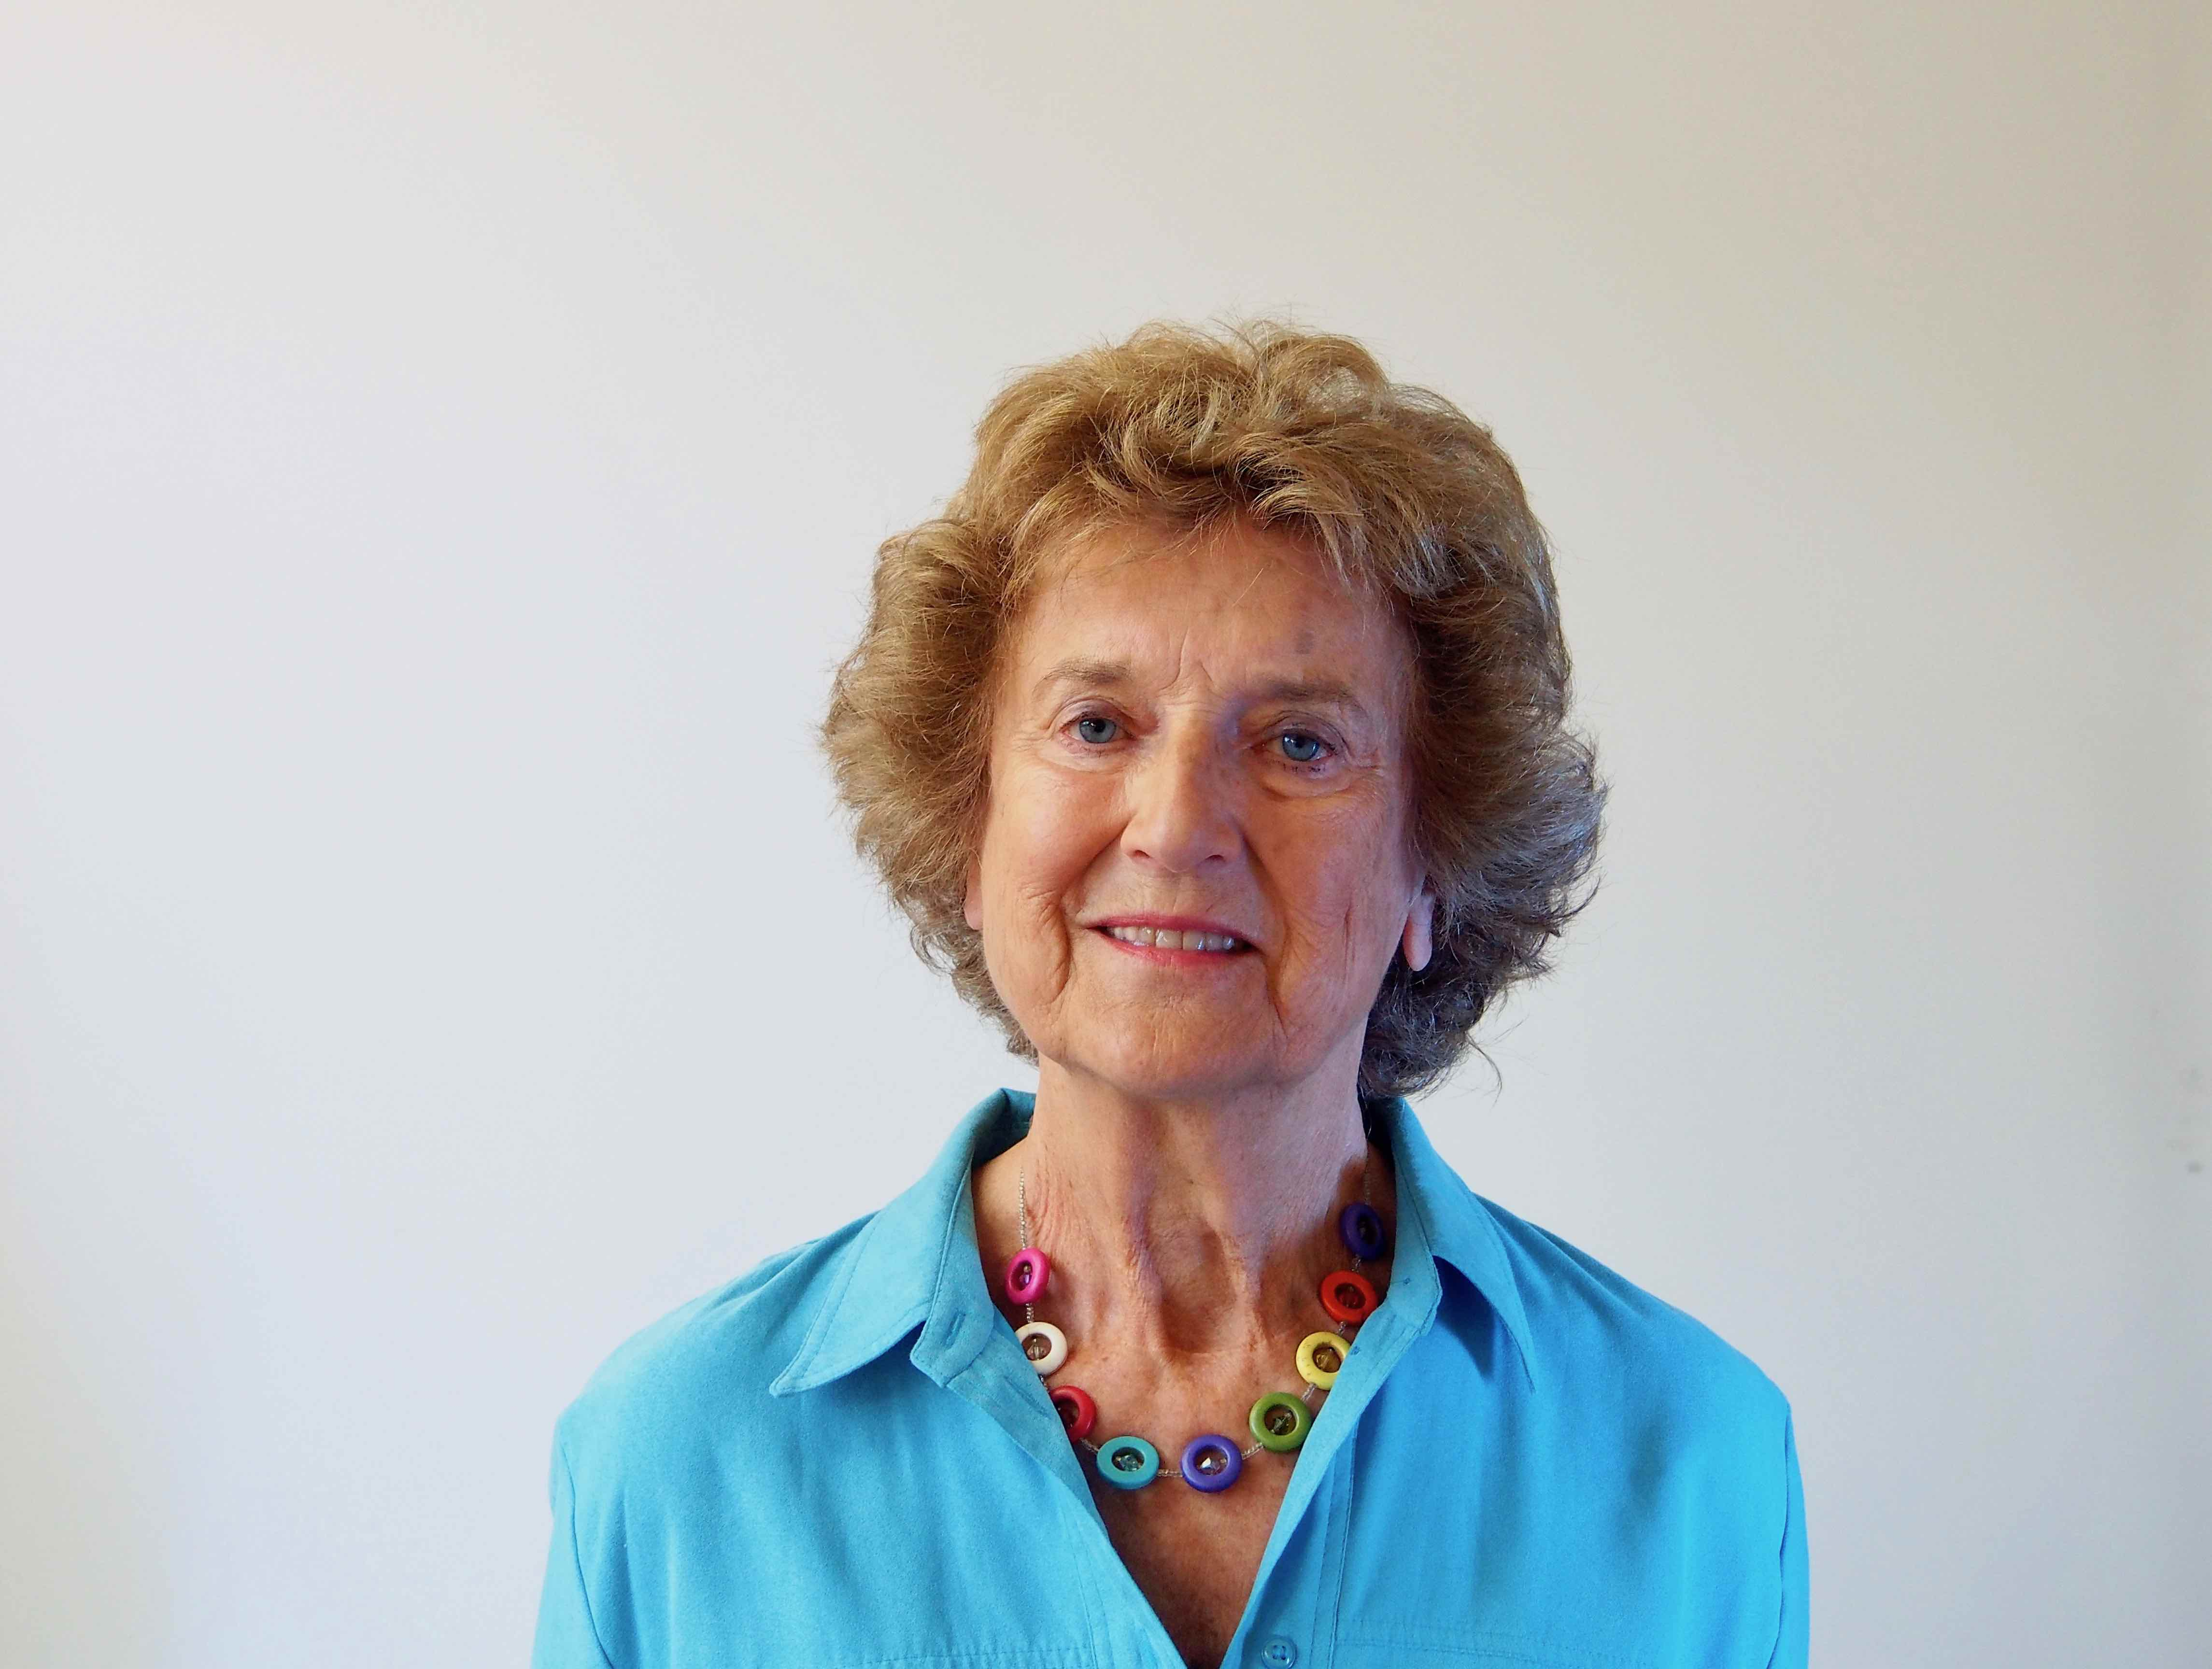 Photograph of Jeanette Minns